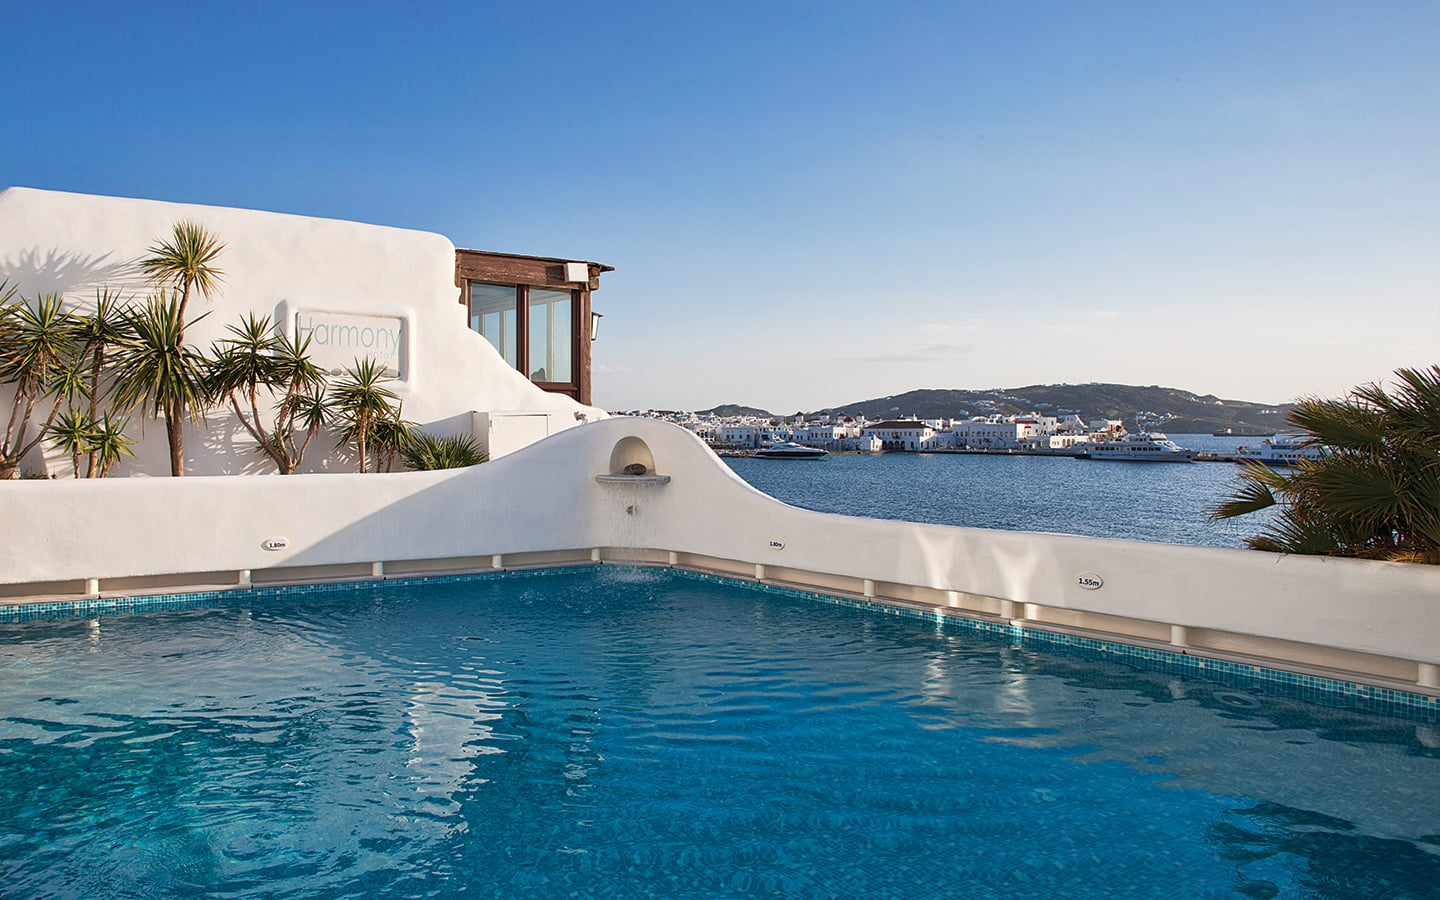 Crystal clear pool overlooking the sea at Harmony Boutique Hotel Mykonos.